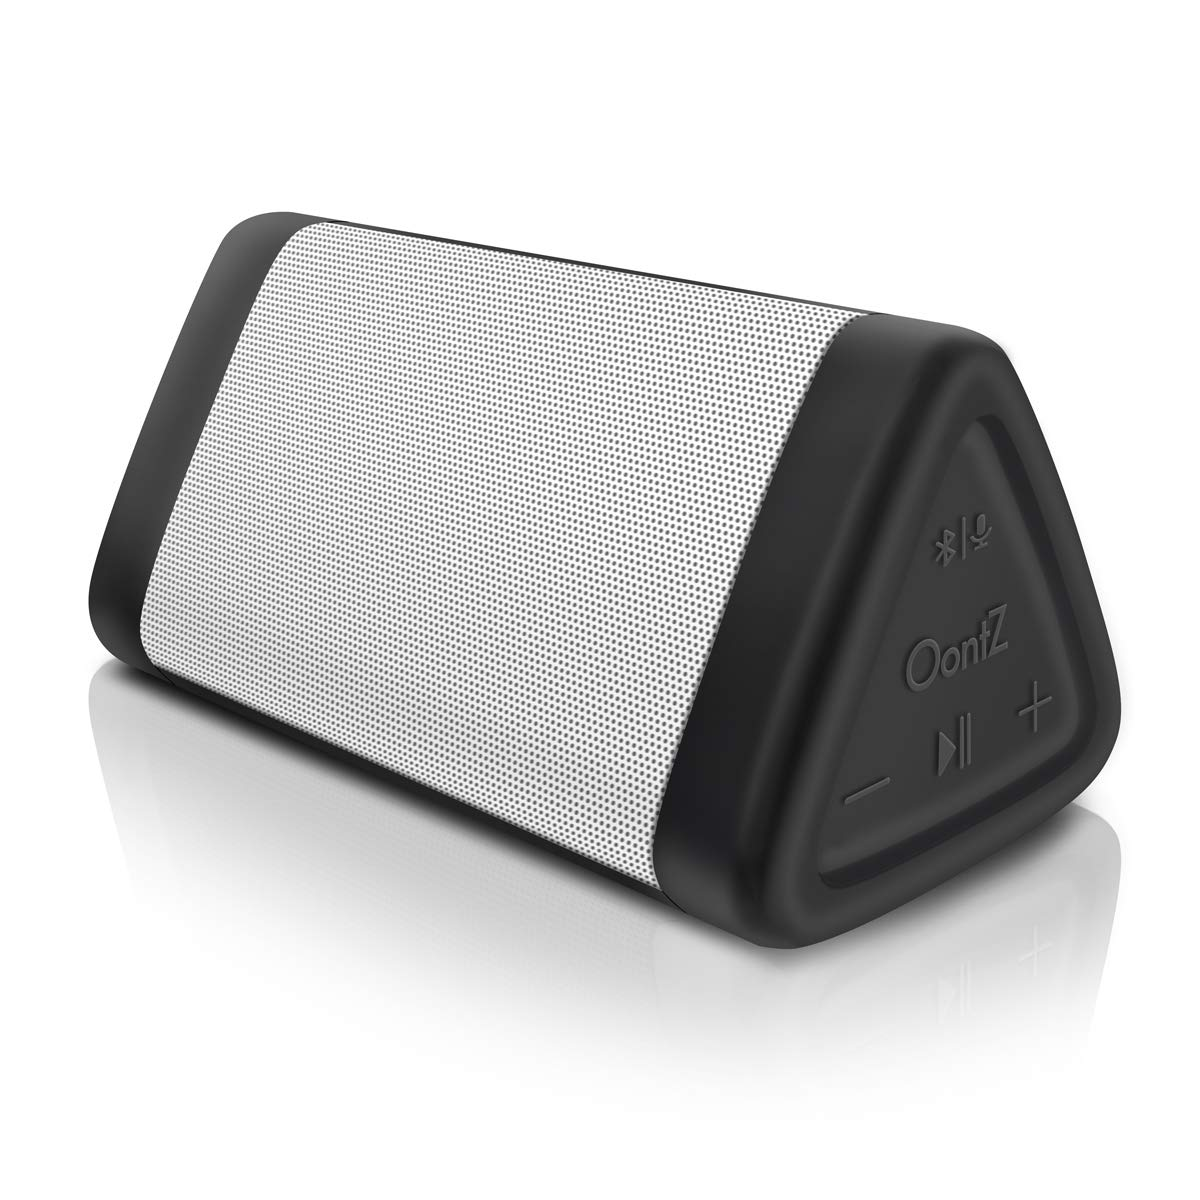 OontZ Angle 3 (3rd Gen) Portable Bluetooth Speaker, Louder Crystal Clear Stereo Sound, Rich Bass, 100 Ft Wireless Speaker Range, IPX5, Bluetooth Speakers by Cambridge SoundWorks (White) by Cambridge Soundworks (Image #1)